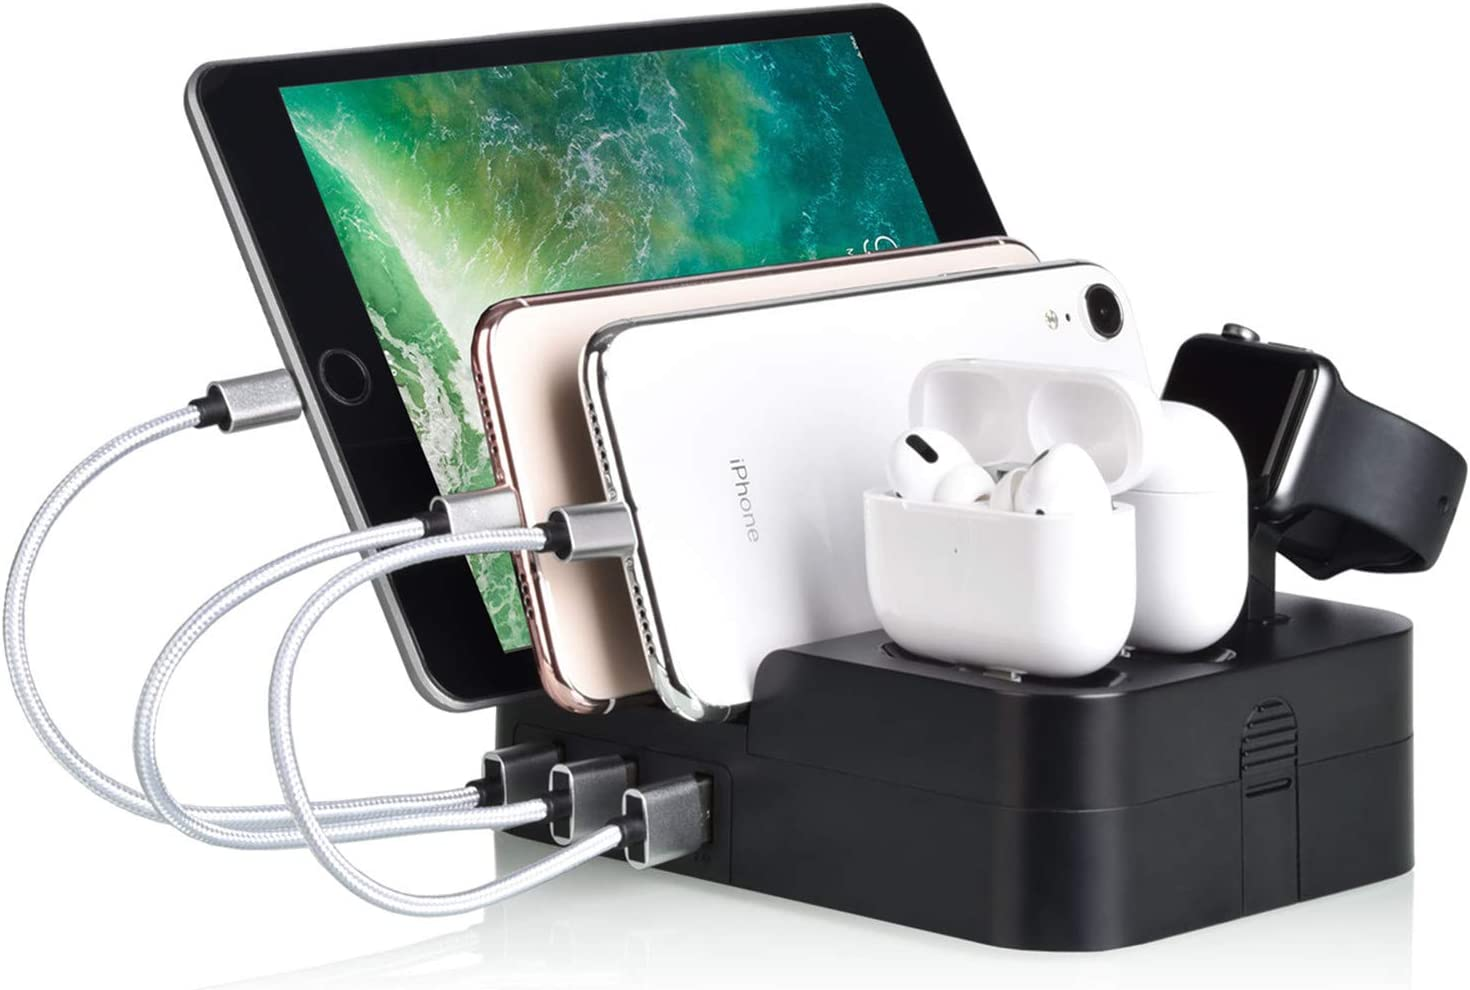 6 Port USB Charging Station Multi Device USB Charging Dock Station HUB Desktop Charger Stand Organizer Compatible for iPhone ipad Airpods iwatch Kindle Tablet Multiple Devices, Smart Cell Phones